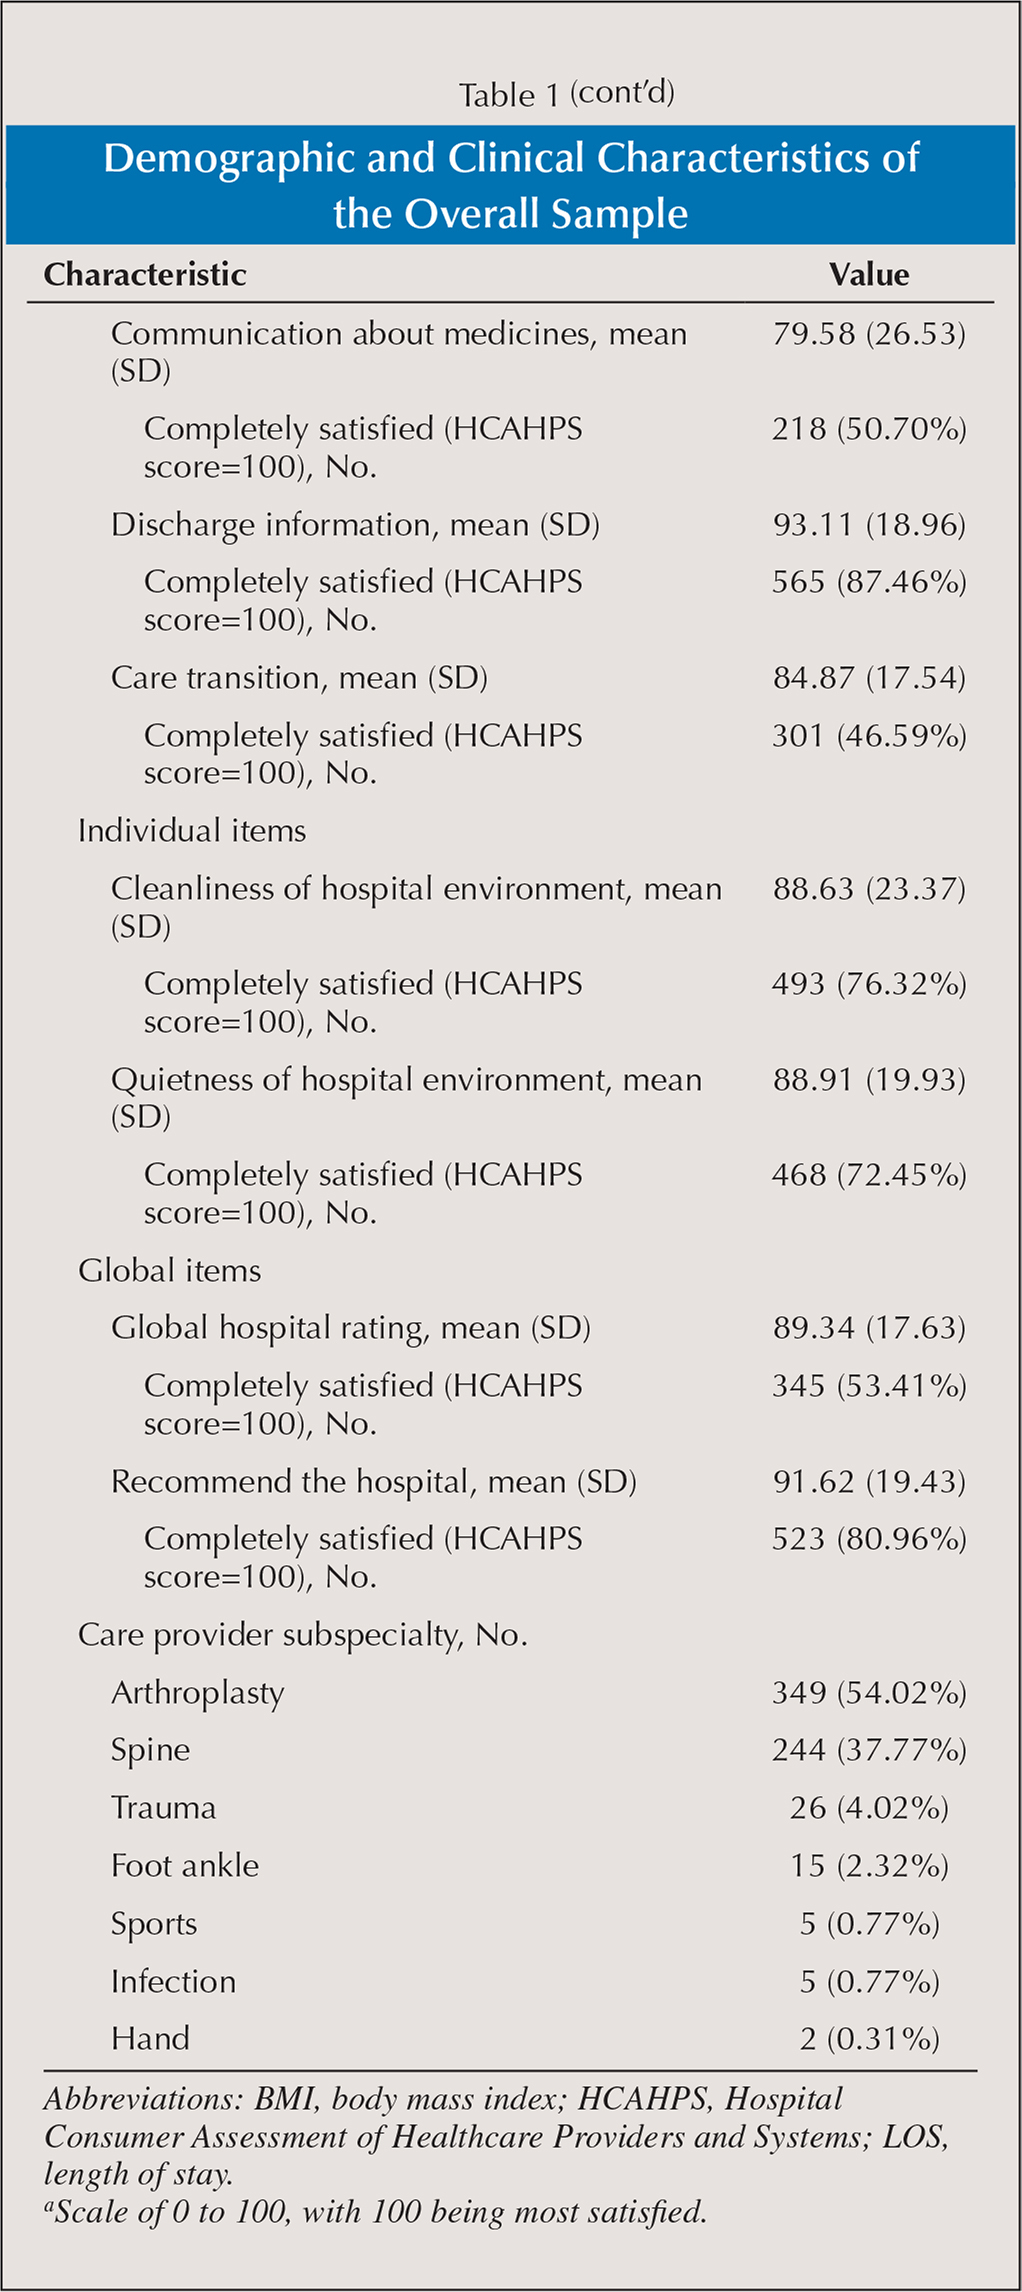 Demographic and Clinical Characteristics of the Overall Sample